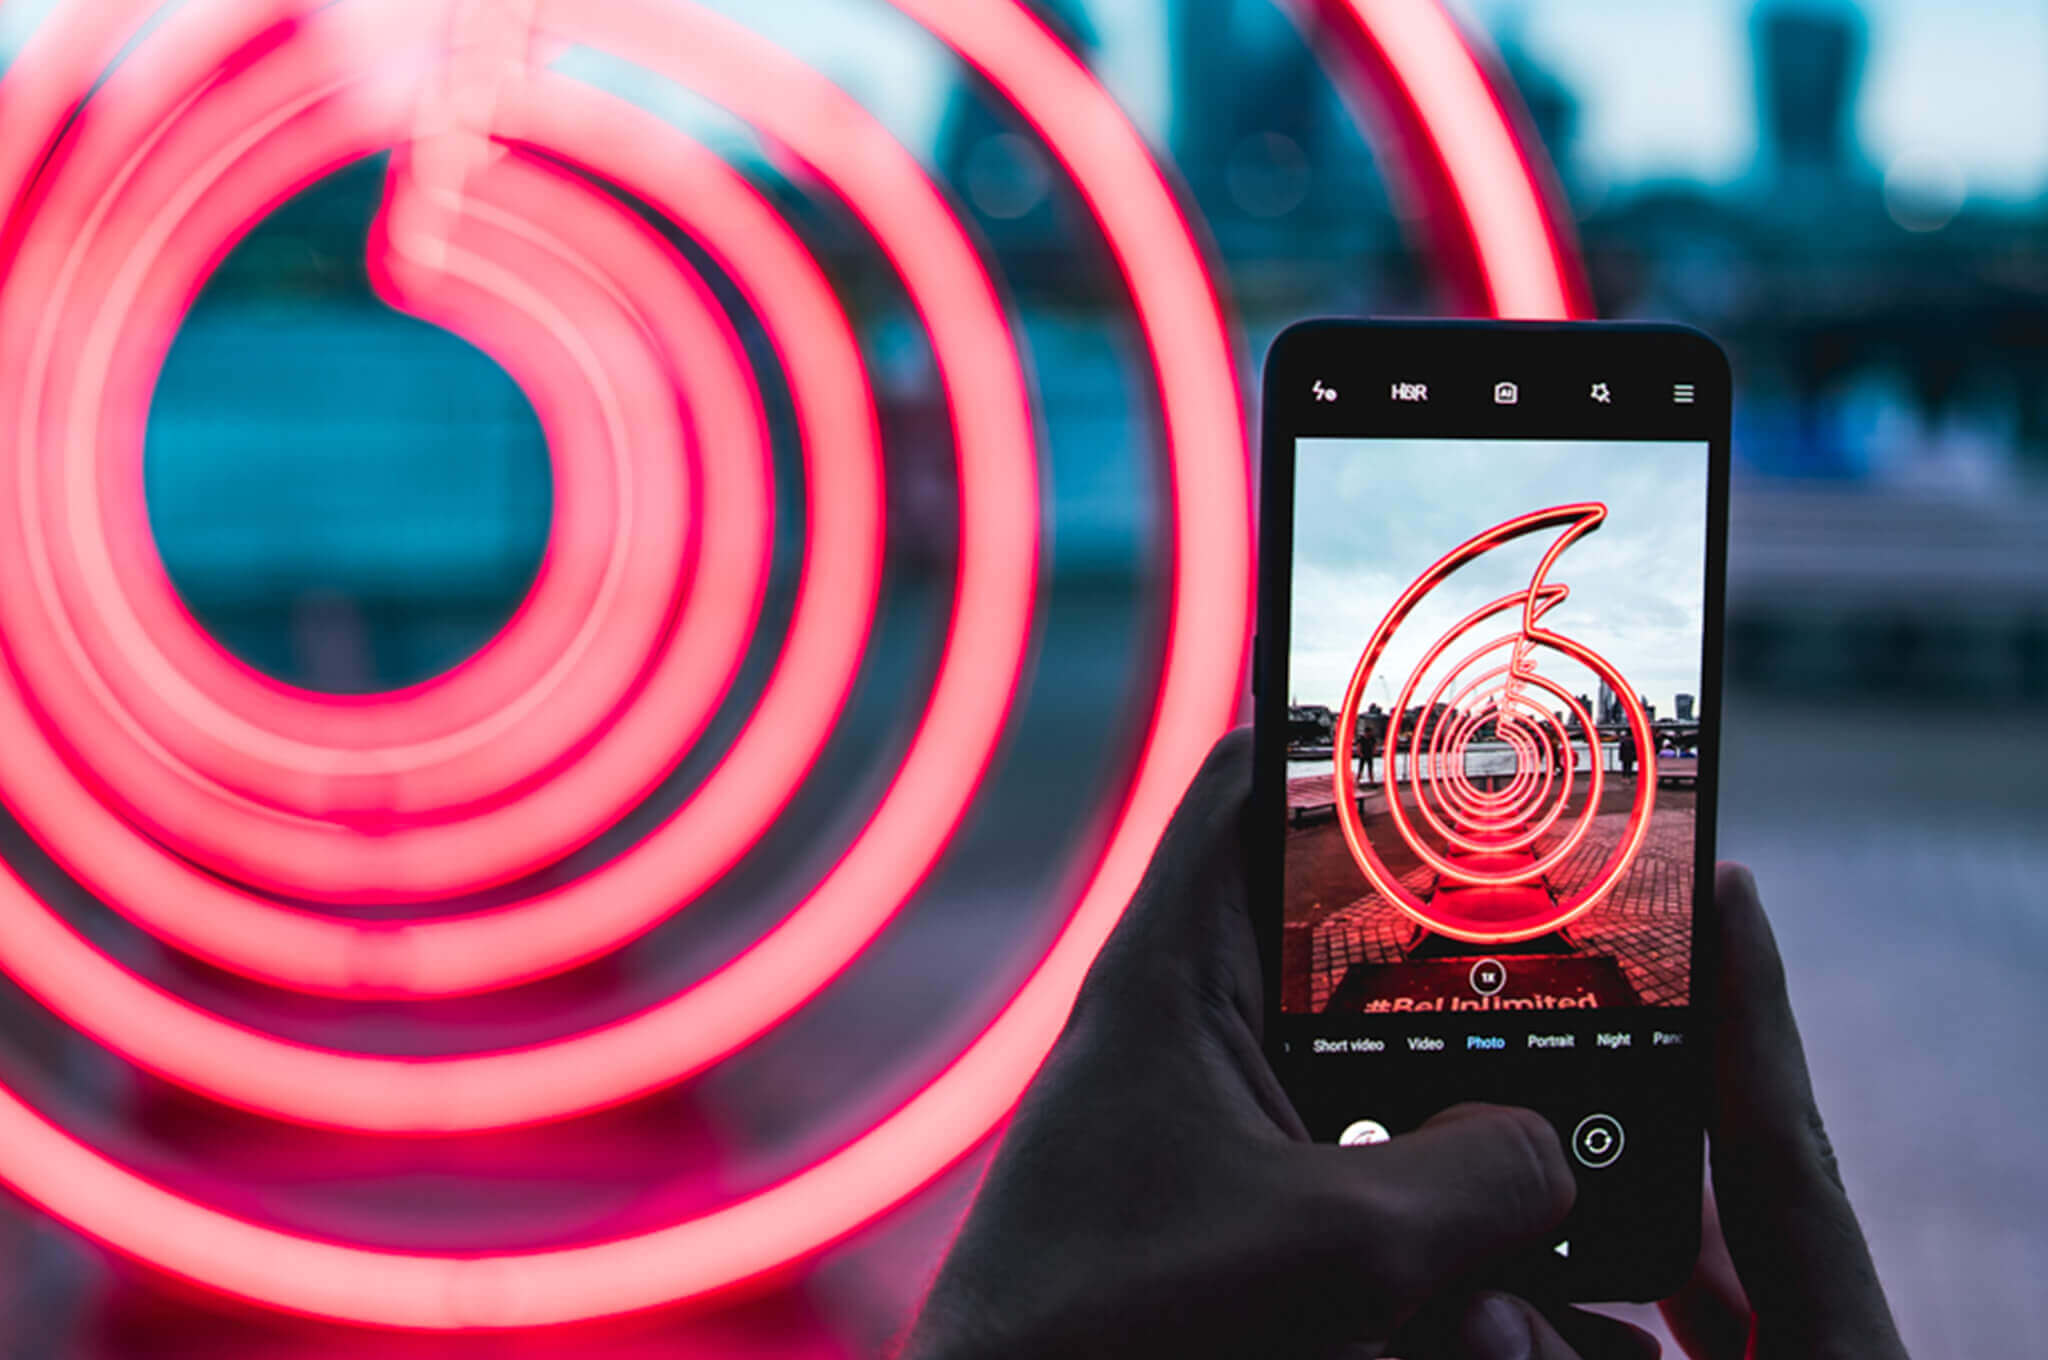 FTSE 100 cheap shares: Vodafone share price projected growth on 5G technology